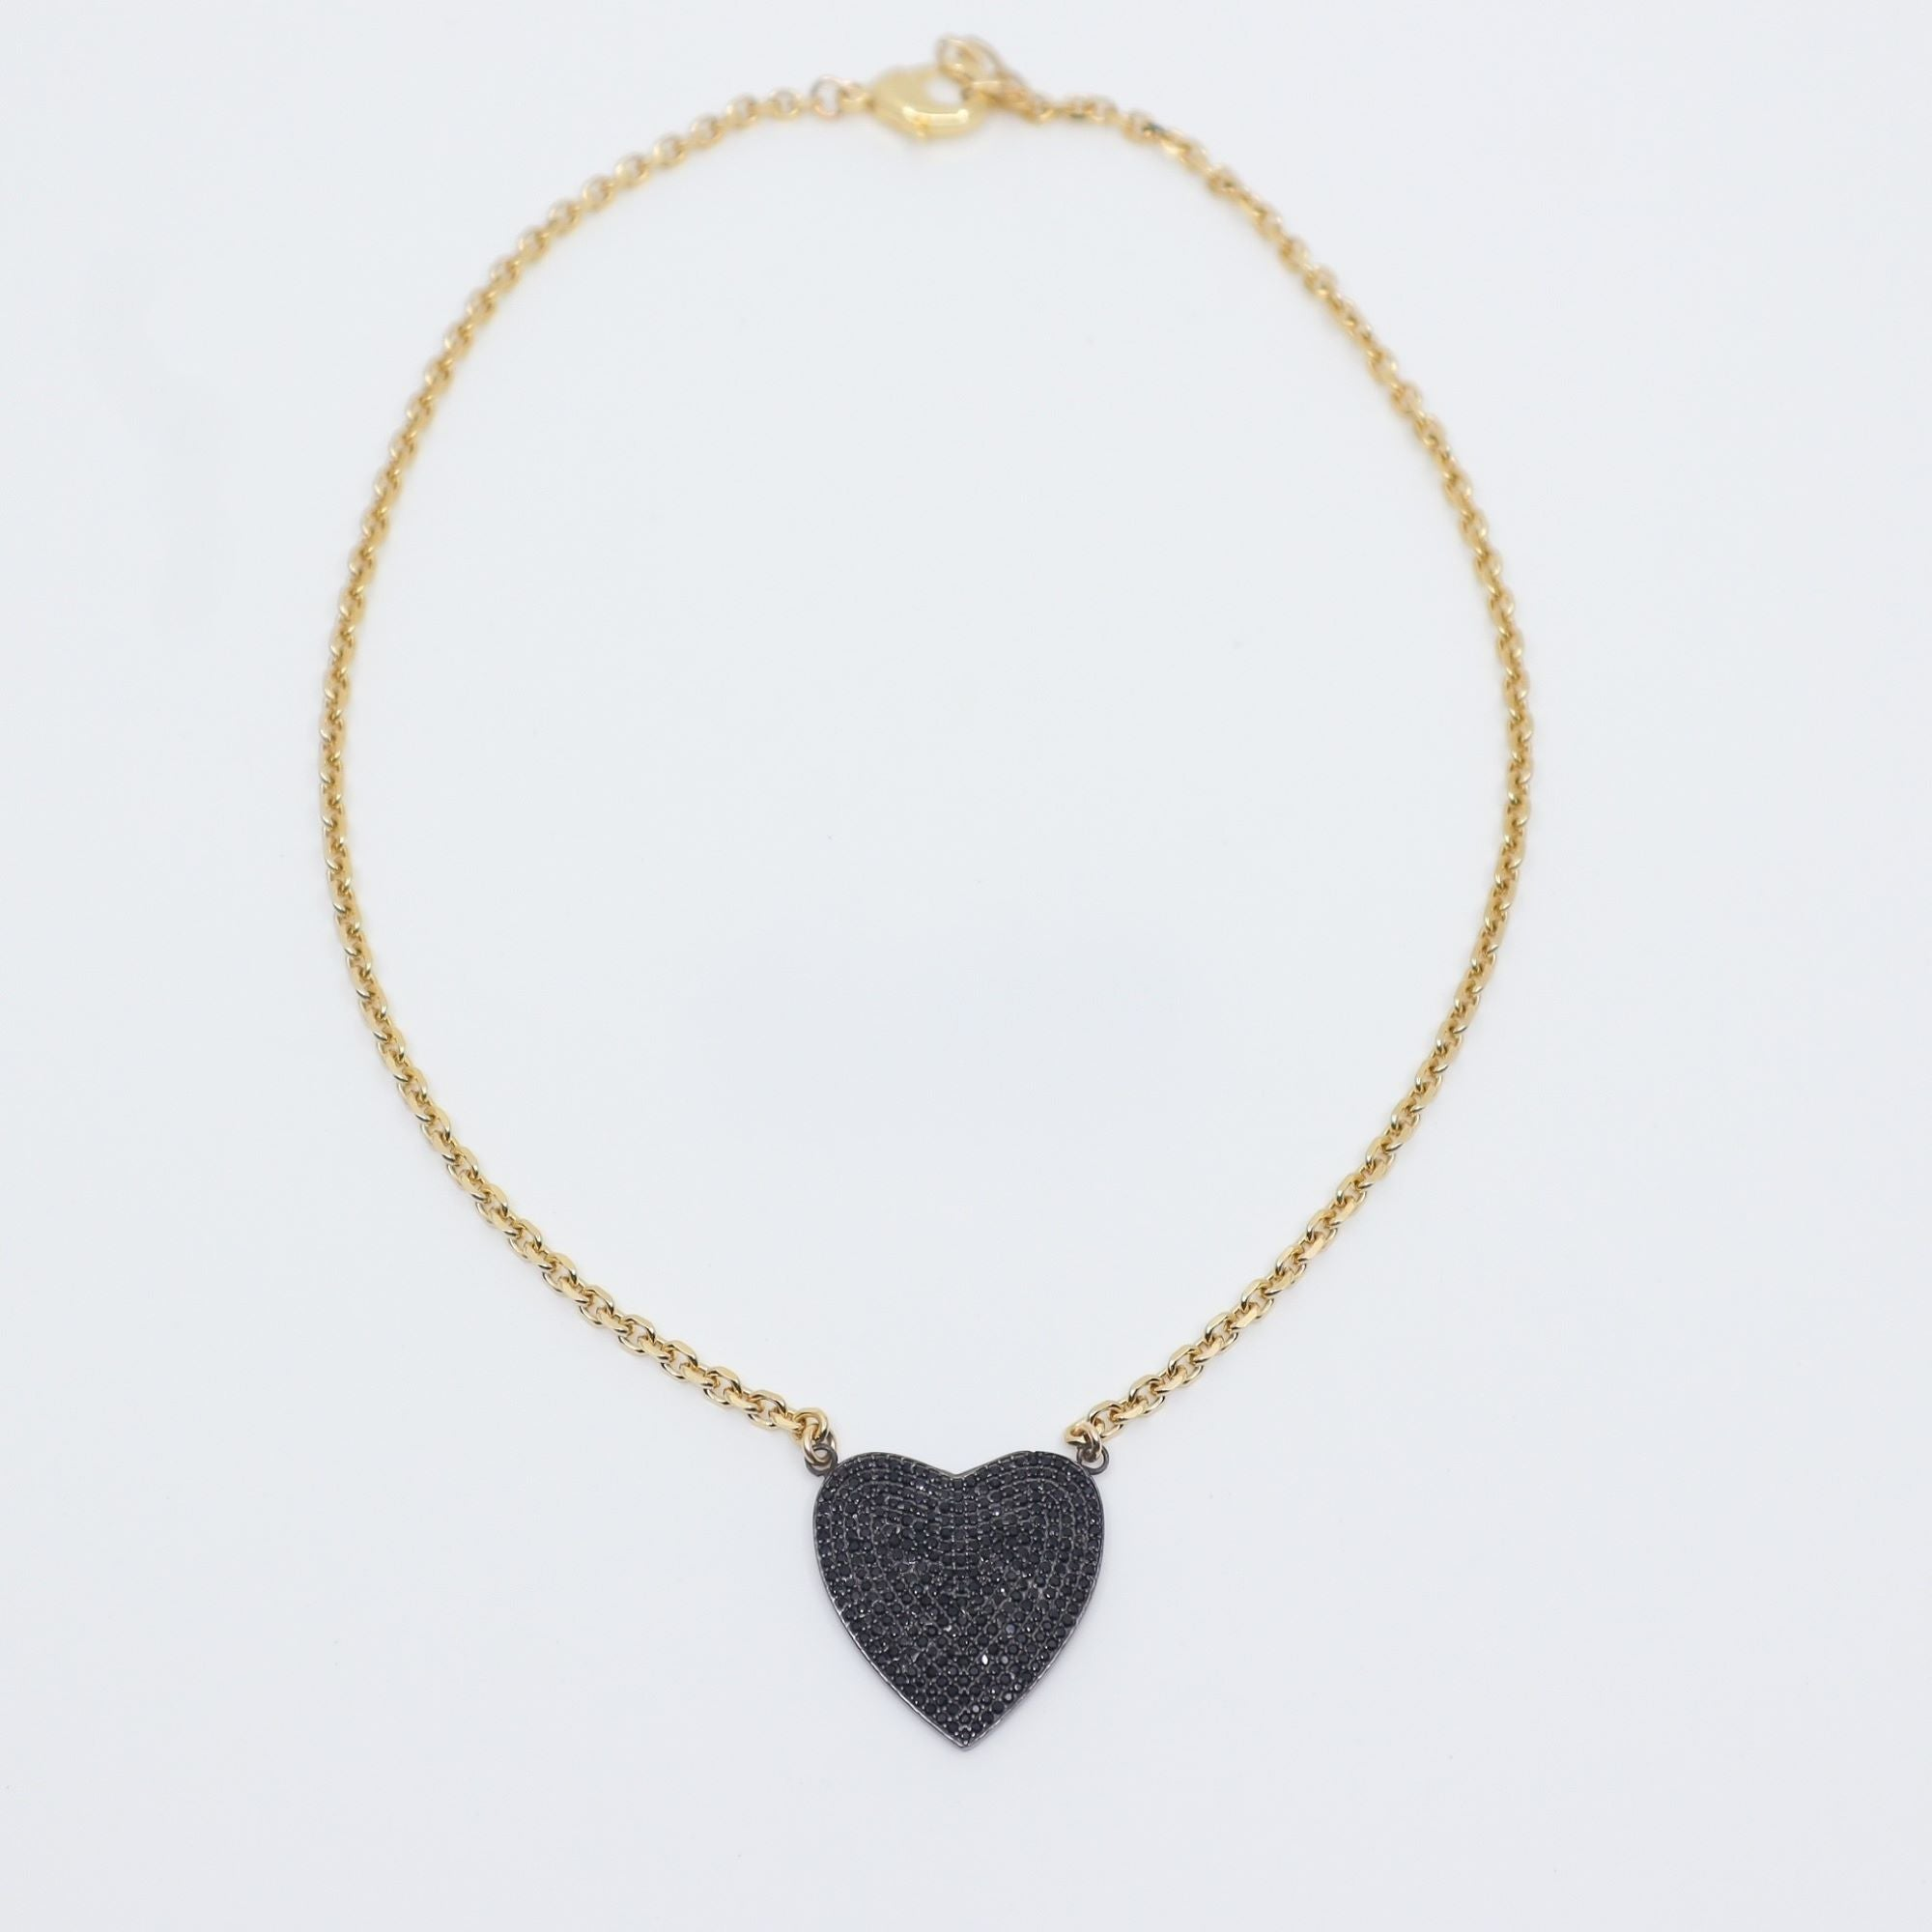 PAULA ROSEN - Spinel Heart with Gold Plated Chain